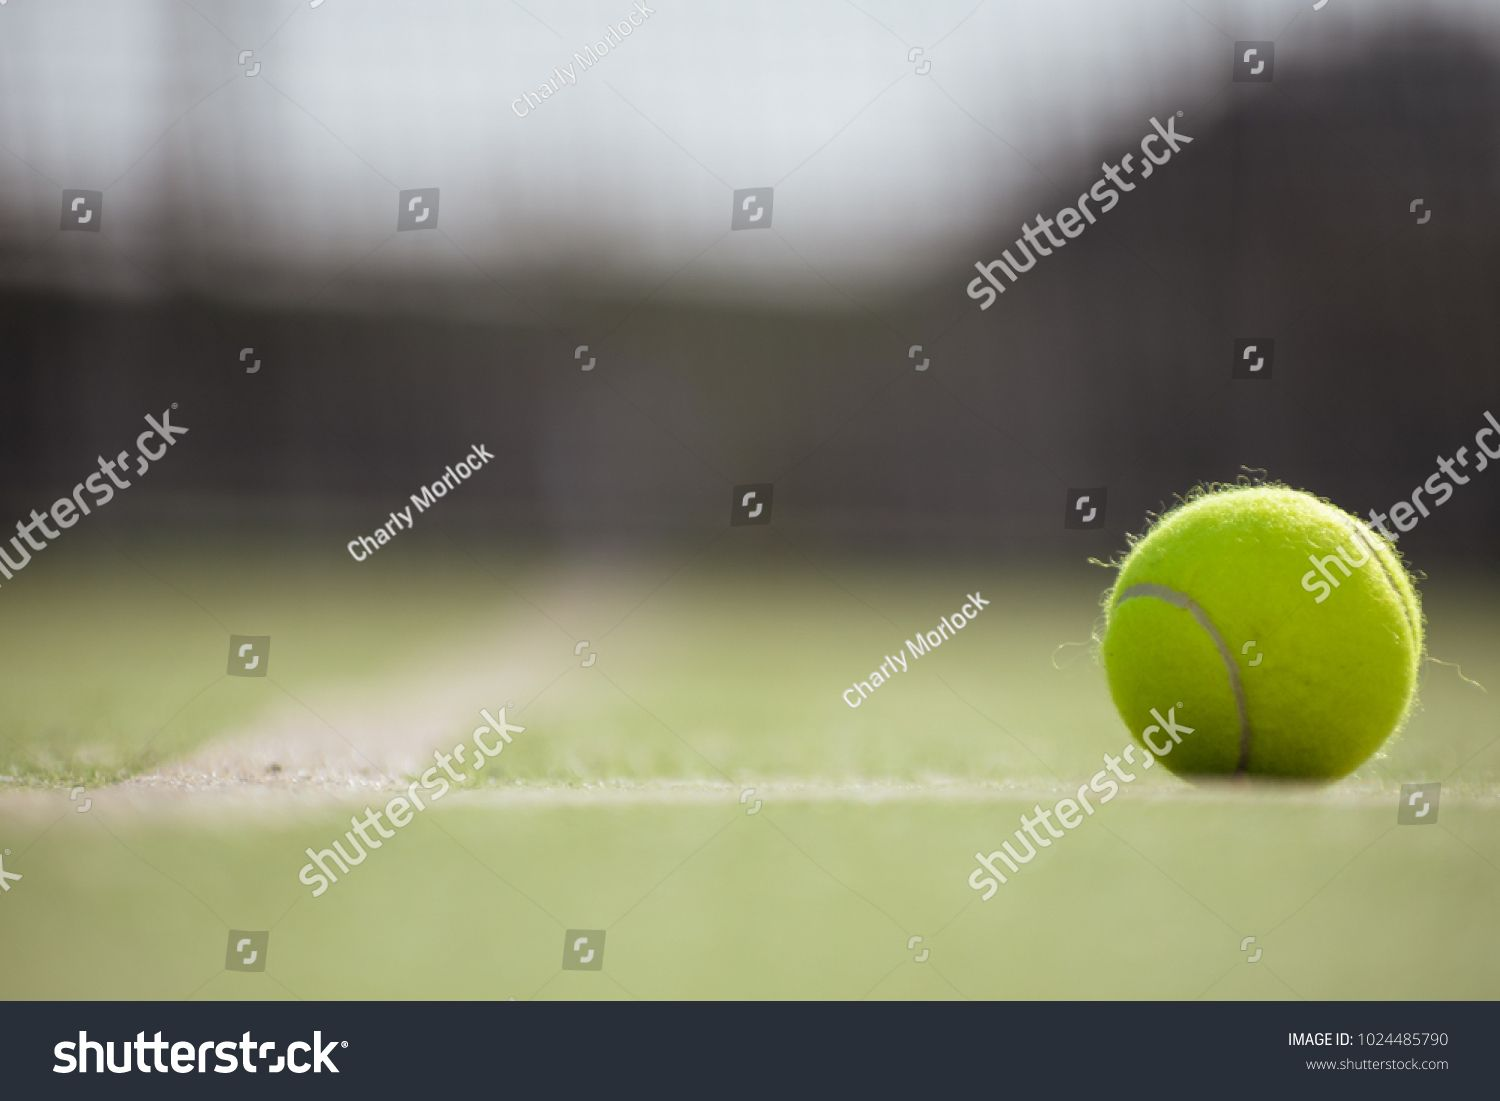 Ball Tennis Padel On Artificial Grass Track Ad Sponsored Padel Tennis Ball Track Tennis Ball Tennis Professional Business Cards